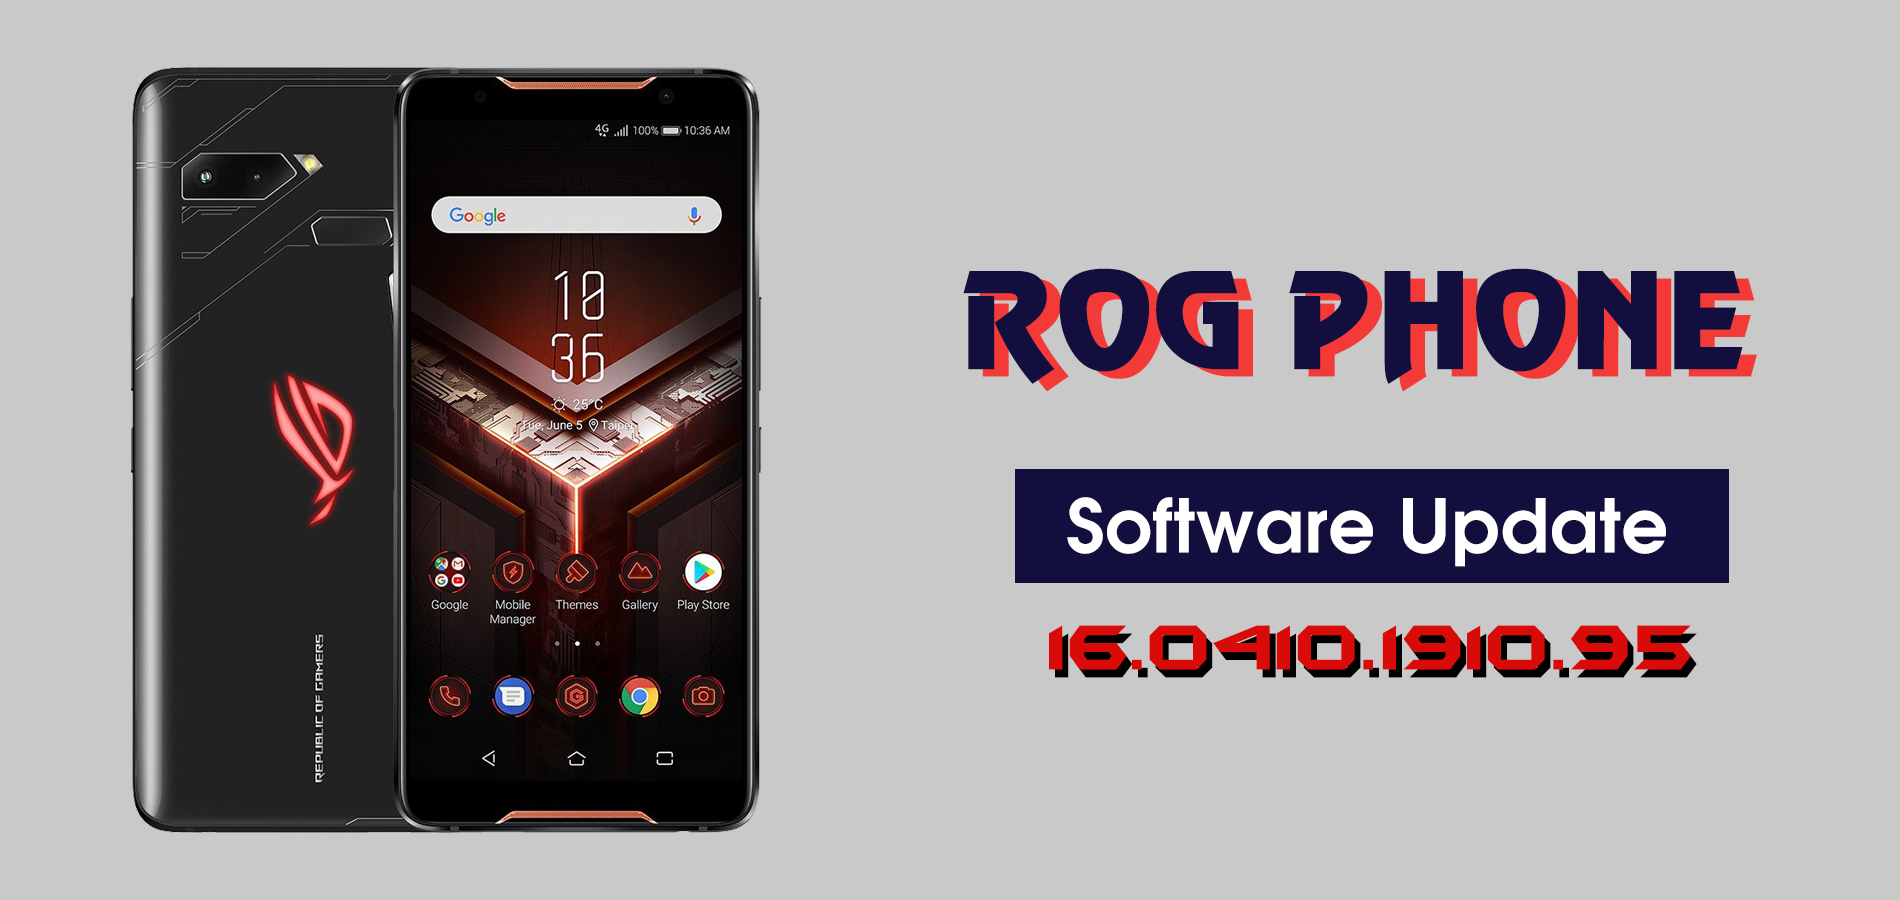 rogphone-zs600kl_update-png.9011